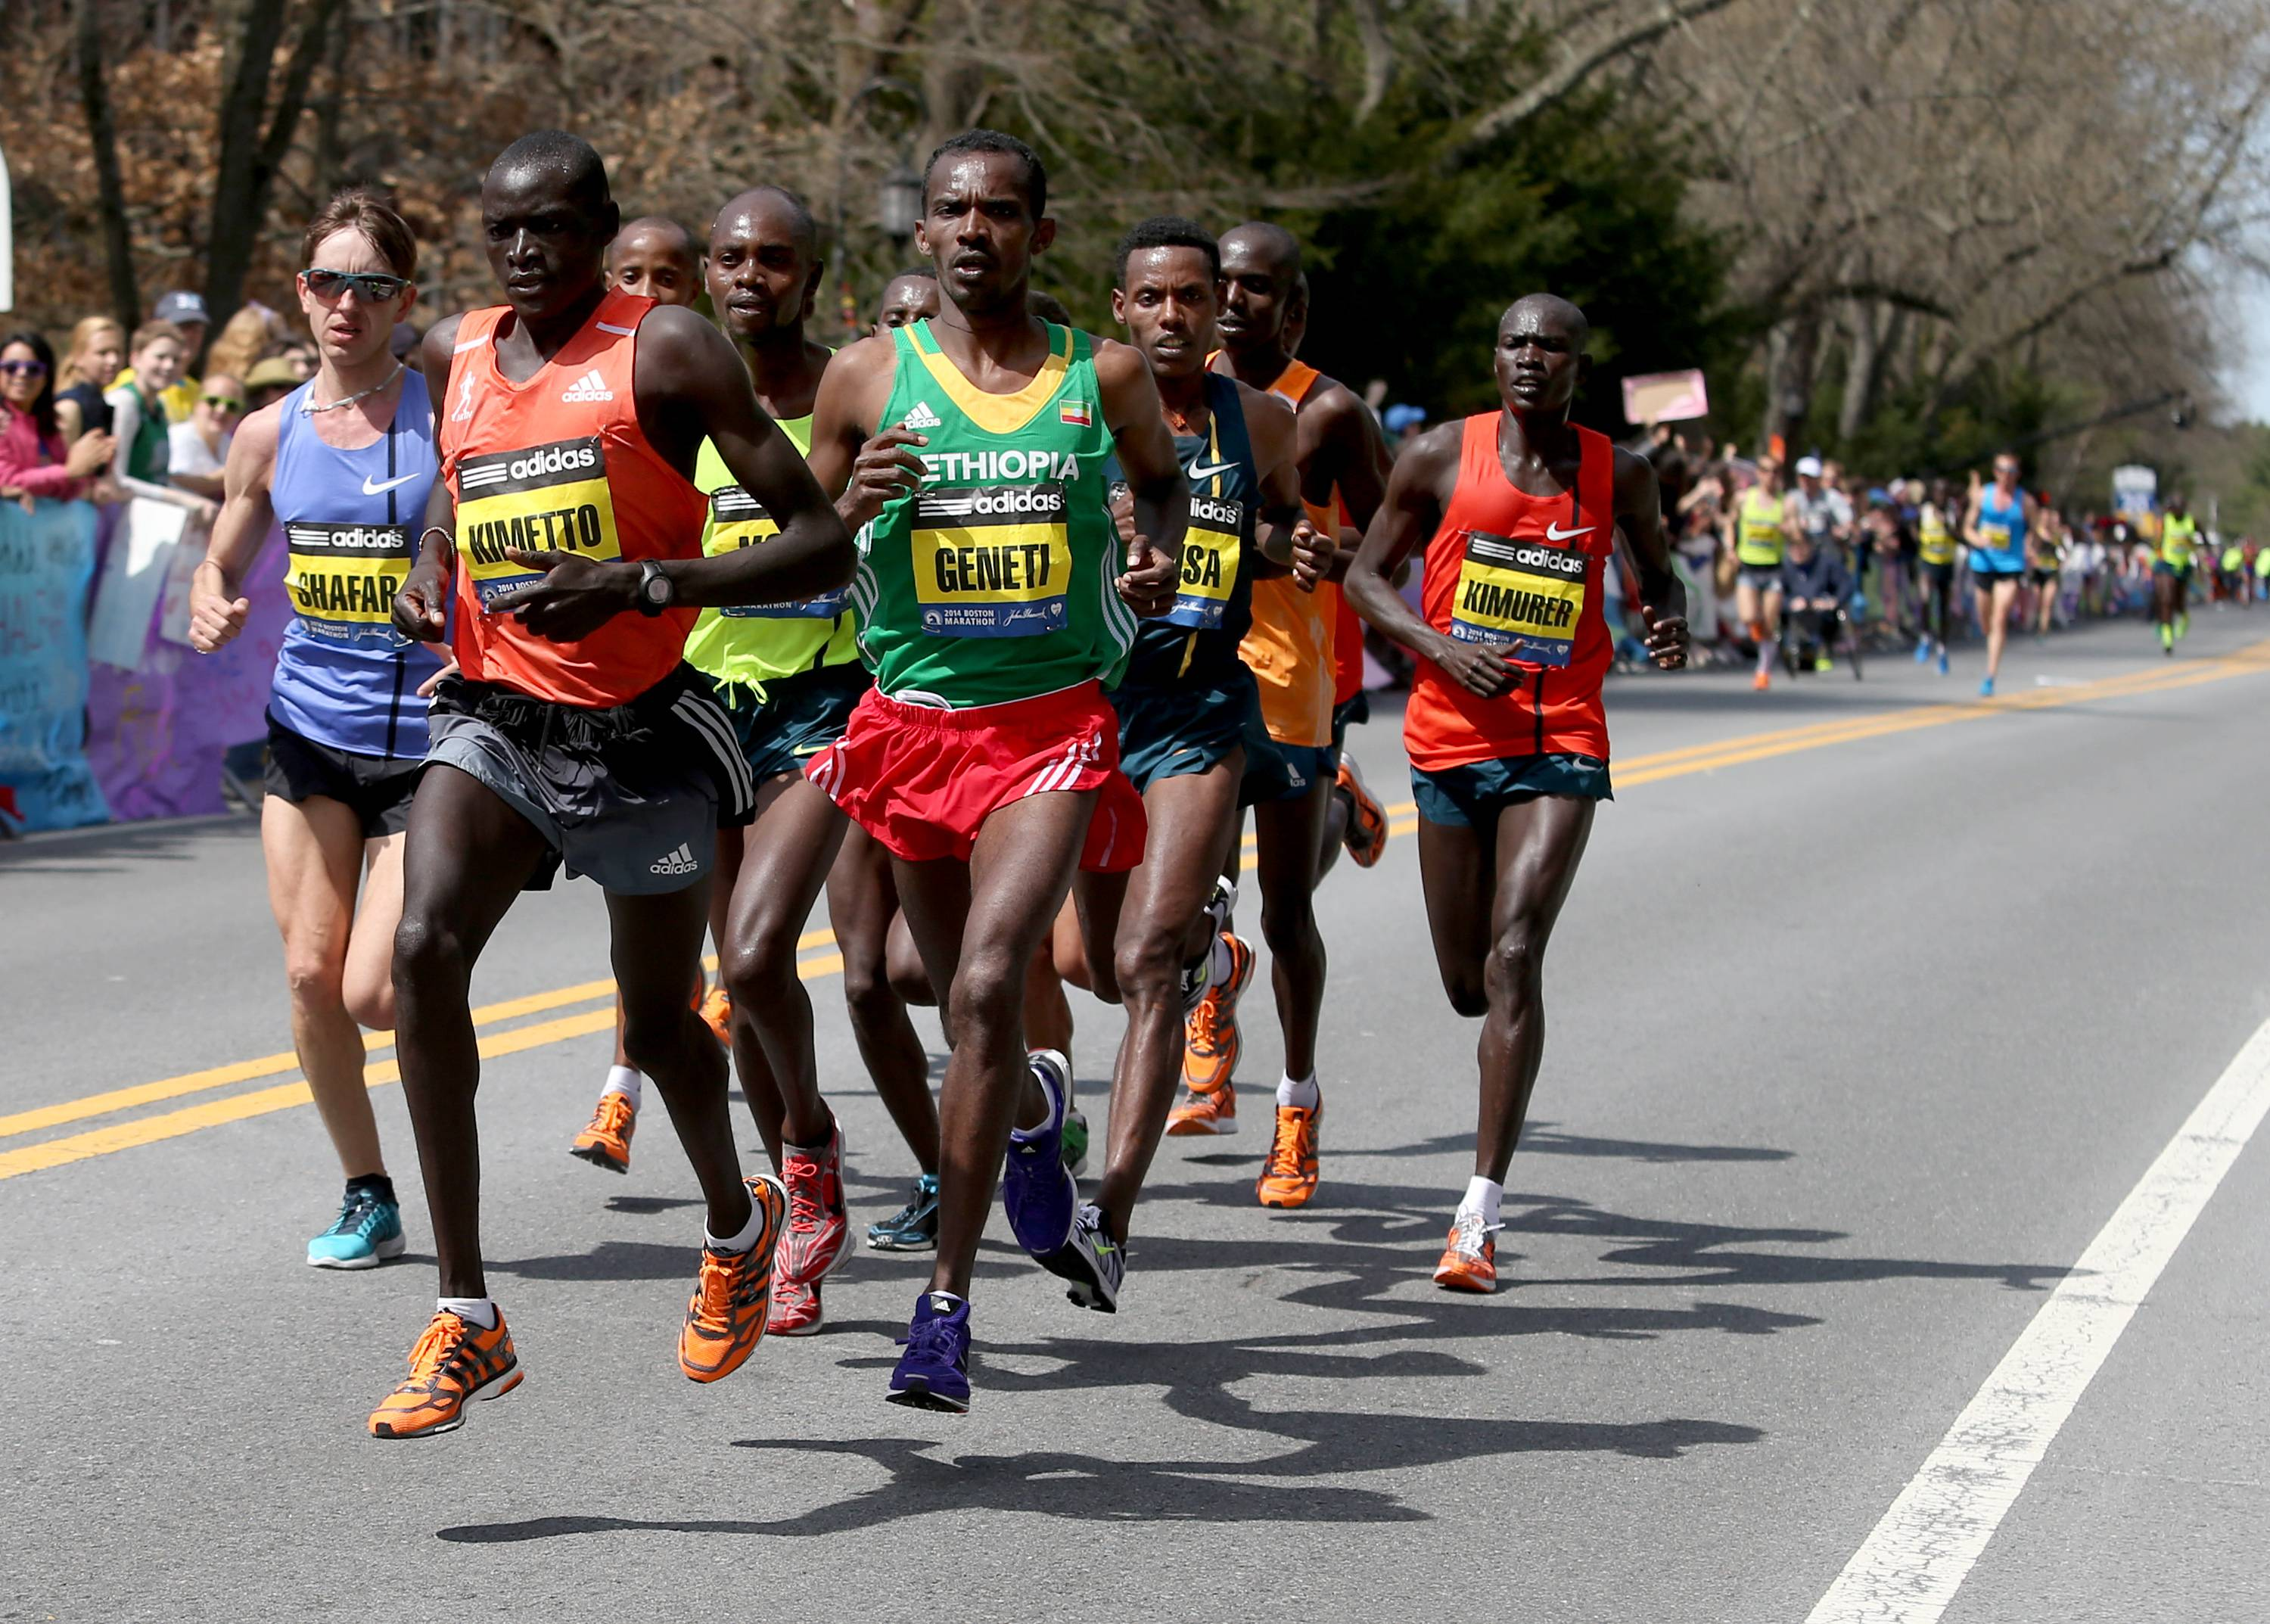 Elite runners lead by Dennis Kimetto, of Kenya, and Markos Geneti, of the United States, pass Wellesley College during the 118th Boston Marathon Monday, April 21, 2014 in Wellesley.